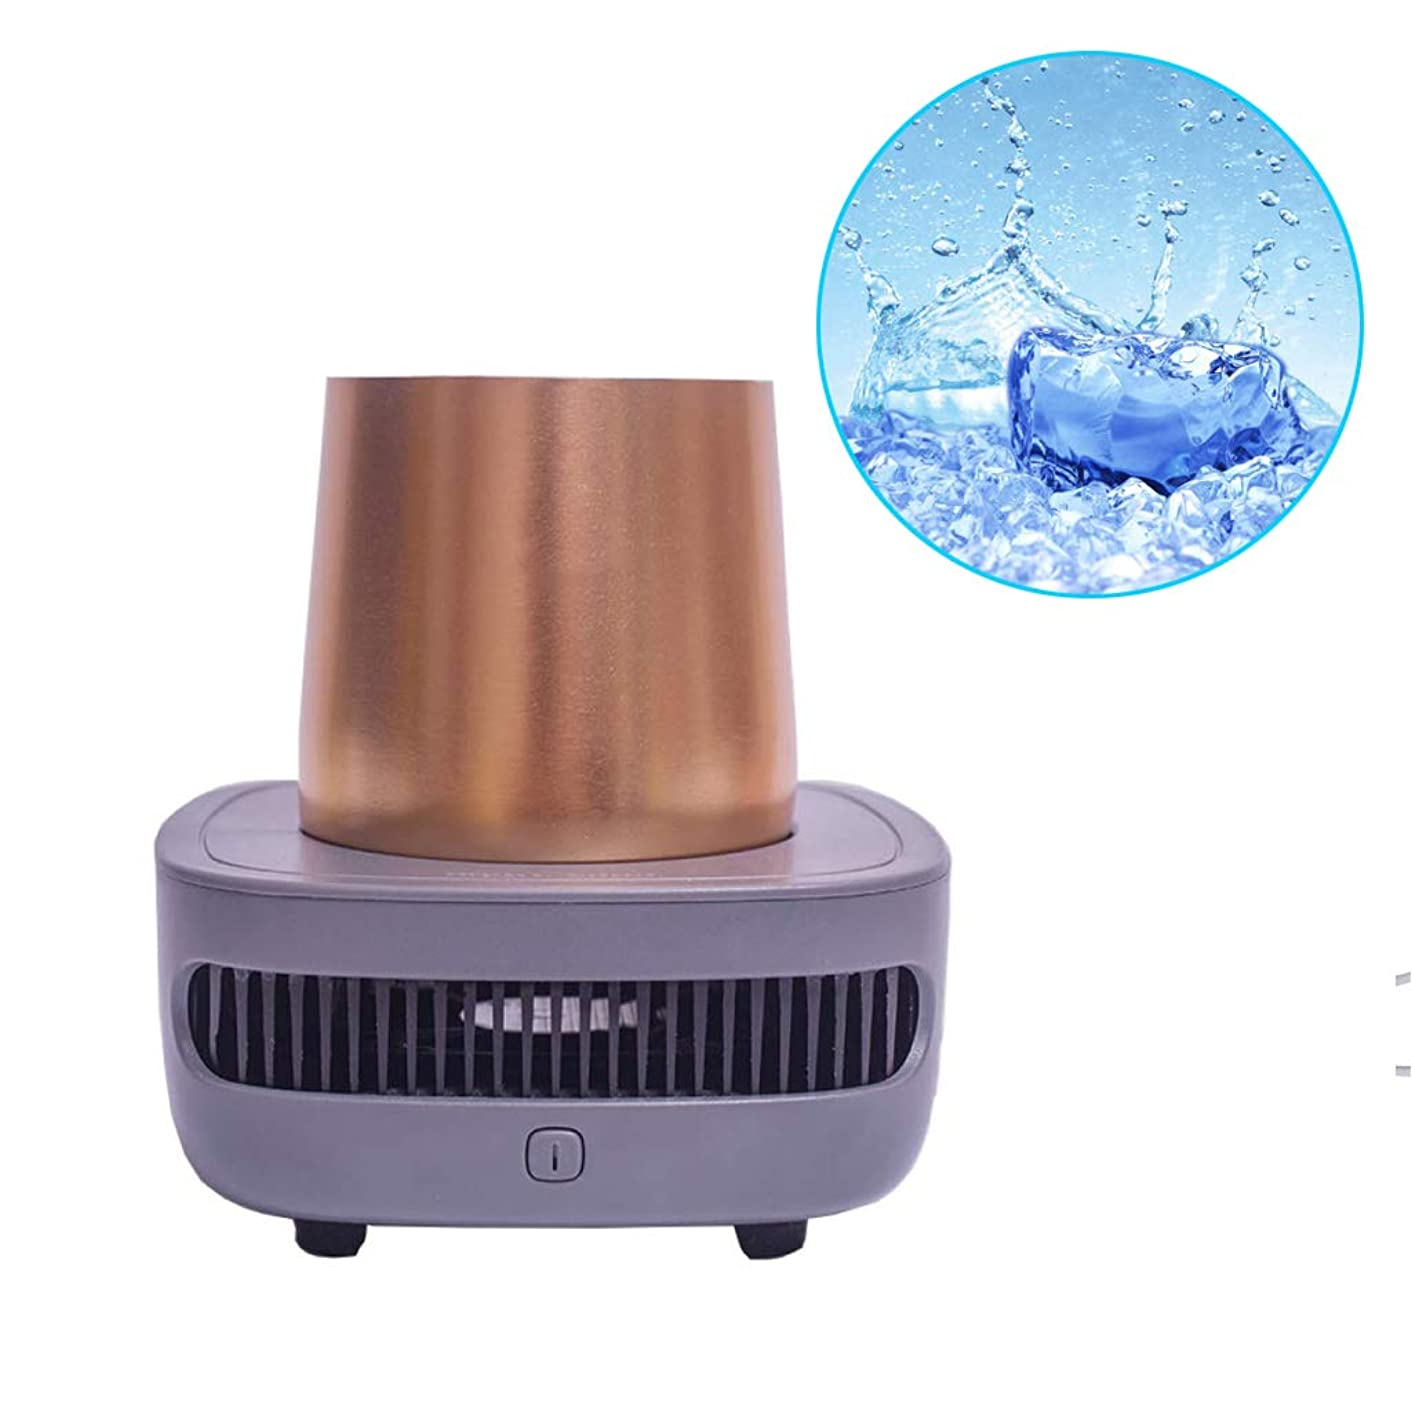 Kzswf Fast Refrigeration Cup, Electronic Fast Cooling Cup Beverage Wine Beer Drink Cooler Iced Mini Fridge Portable Refrigerator,Brass